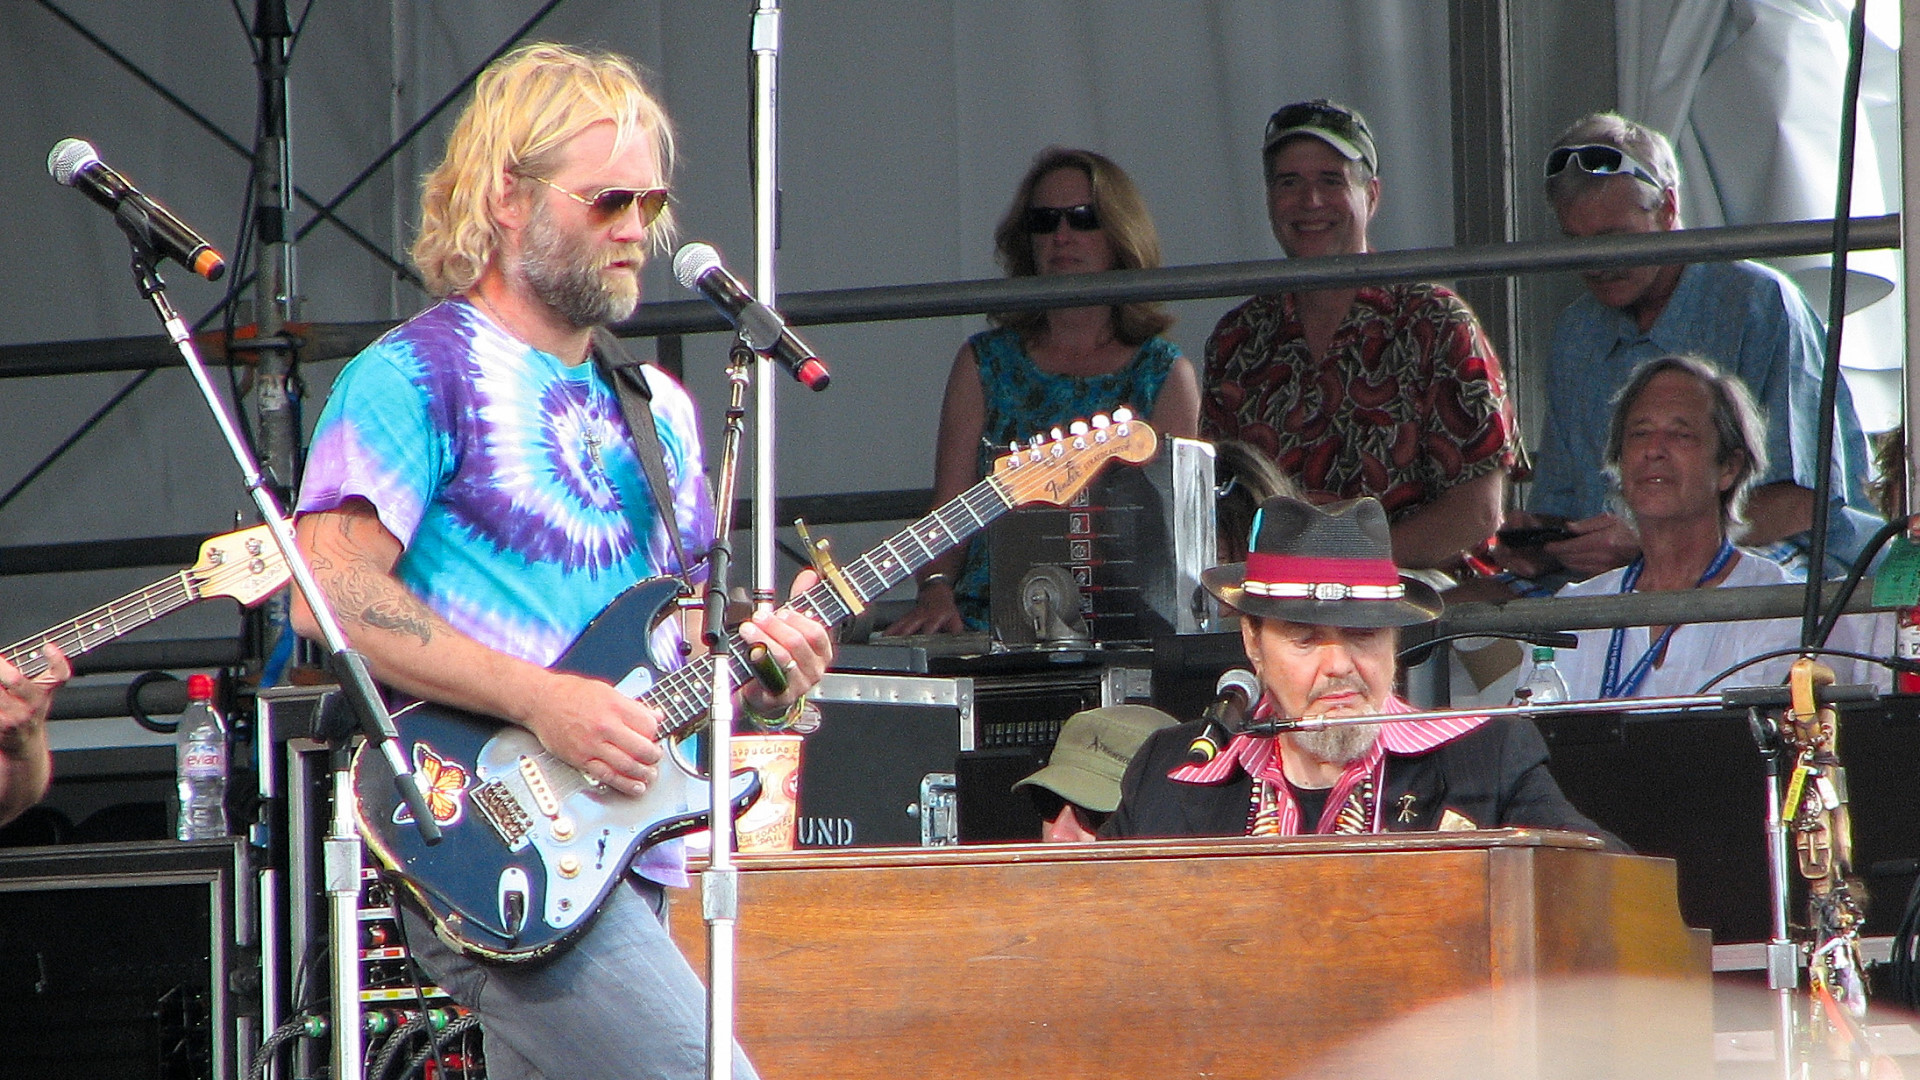 Anders Osborne on guitar and Dr. John on keyboards